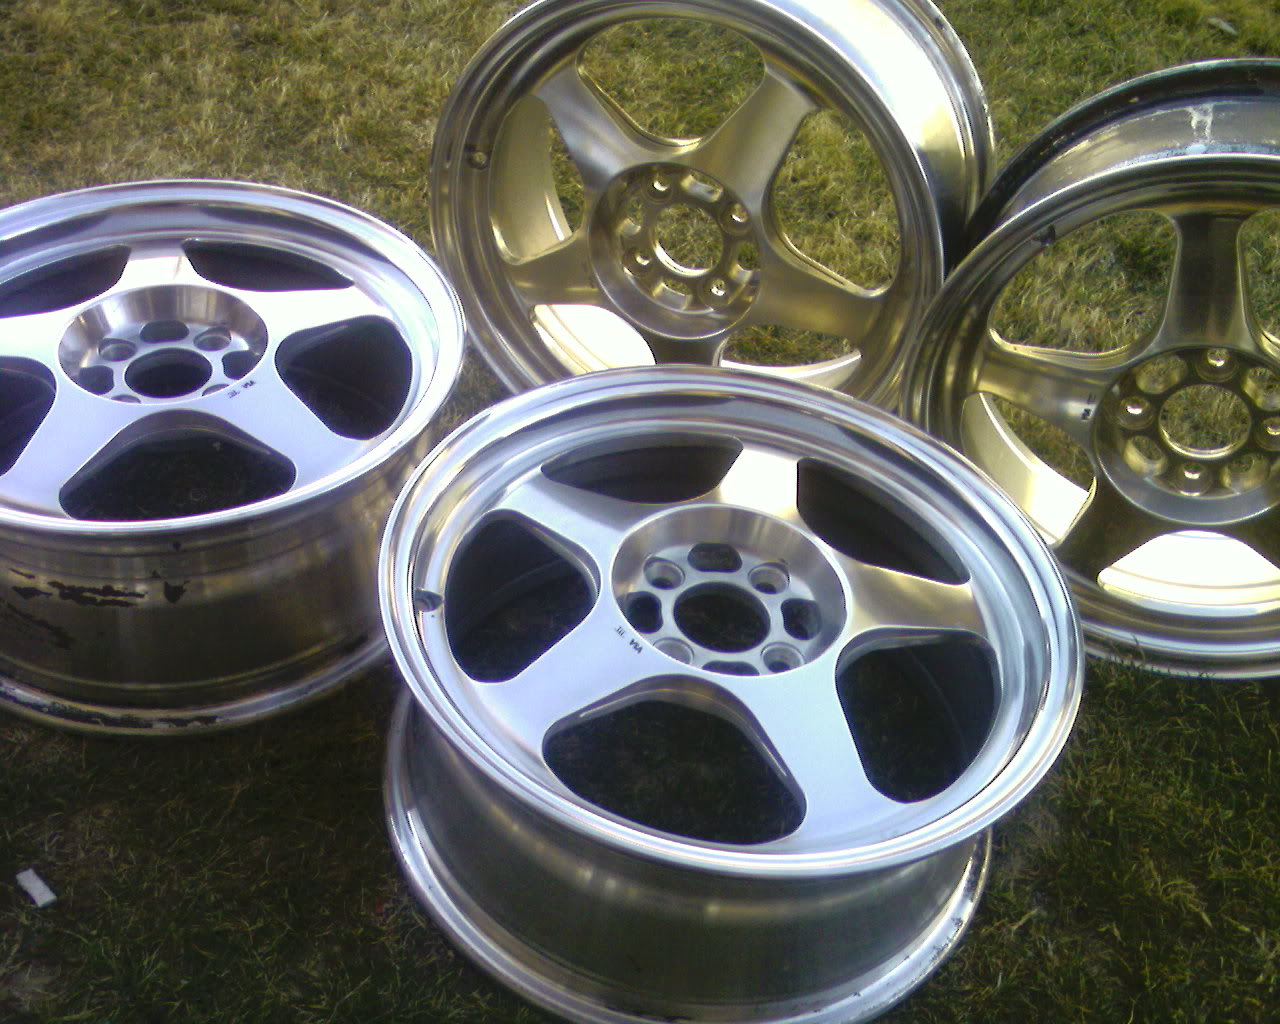 575375f12ba090ff7184cac2d99bc8b4  POLISH YOUR WHEELS!!!